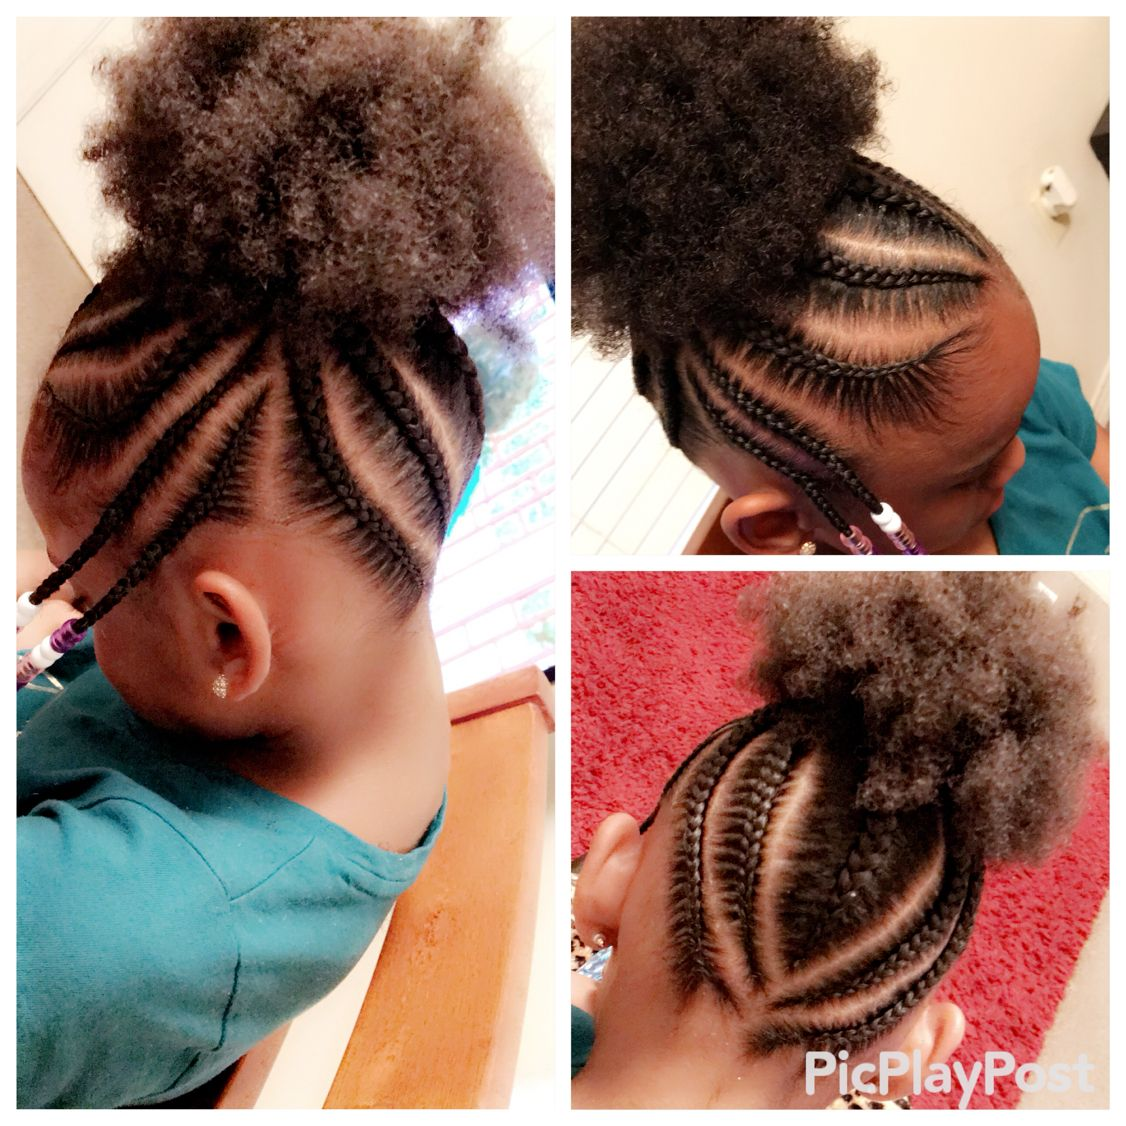 Swell Kids Braids Girls Natural Hairstyles Baby Hairstyles Kids Schematic Wiring Diagrams Phreekkolirunnerswayorg